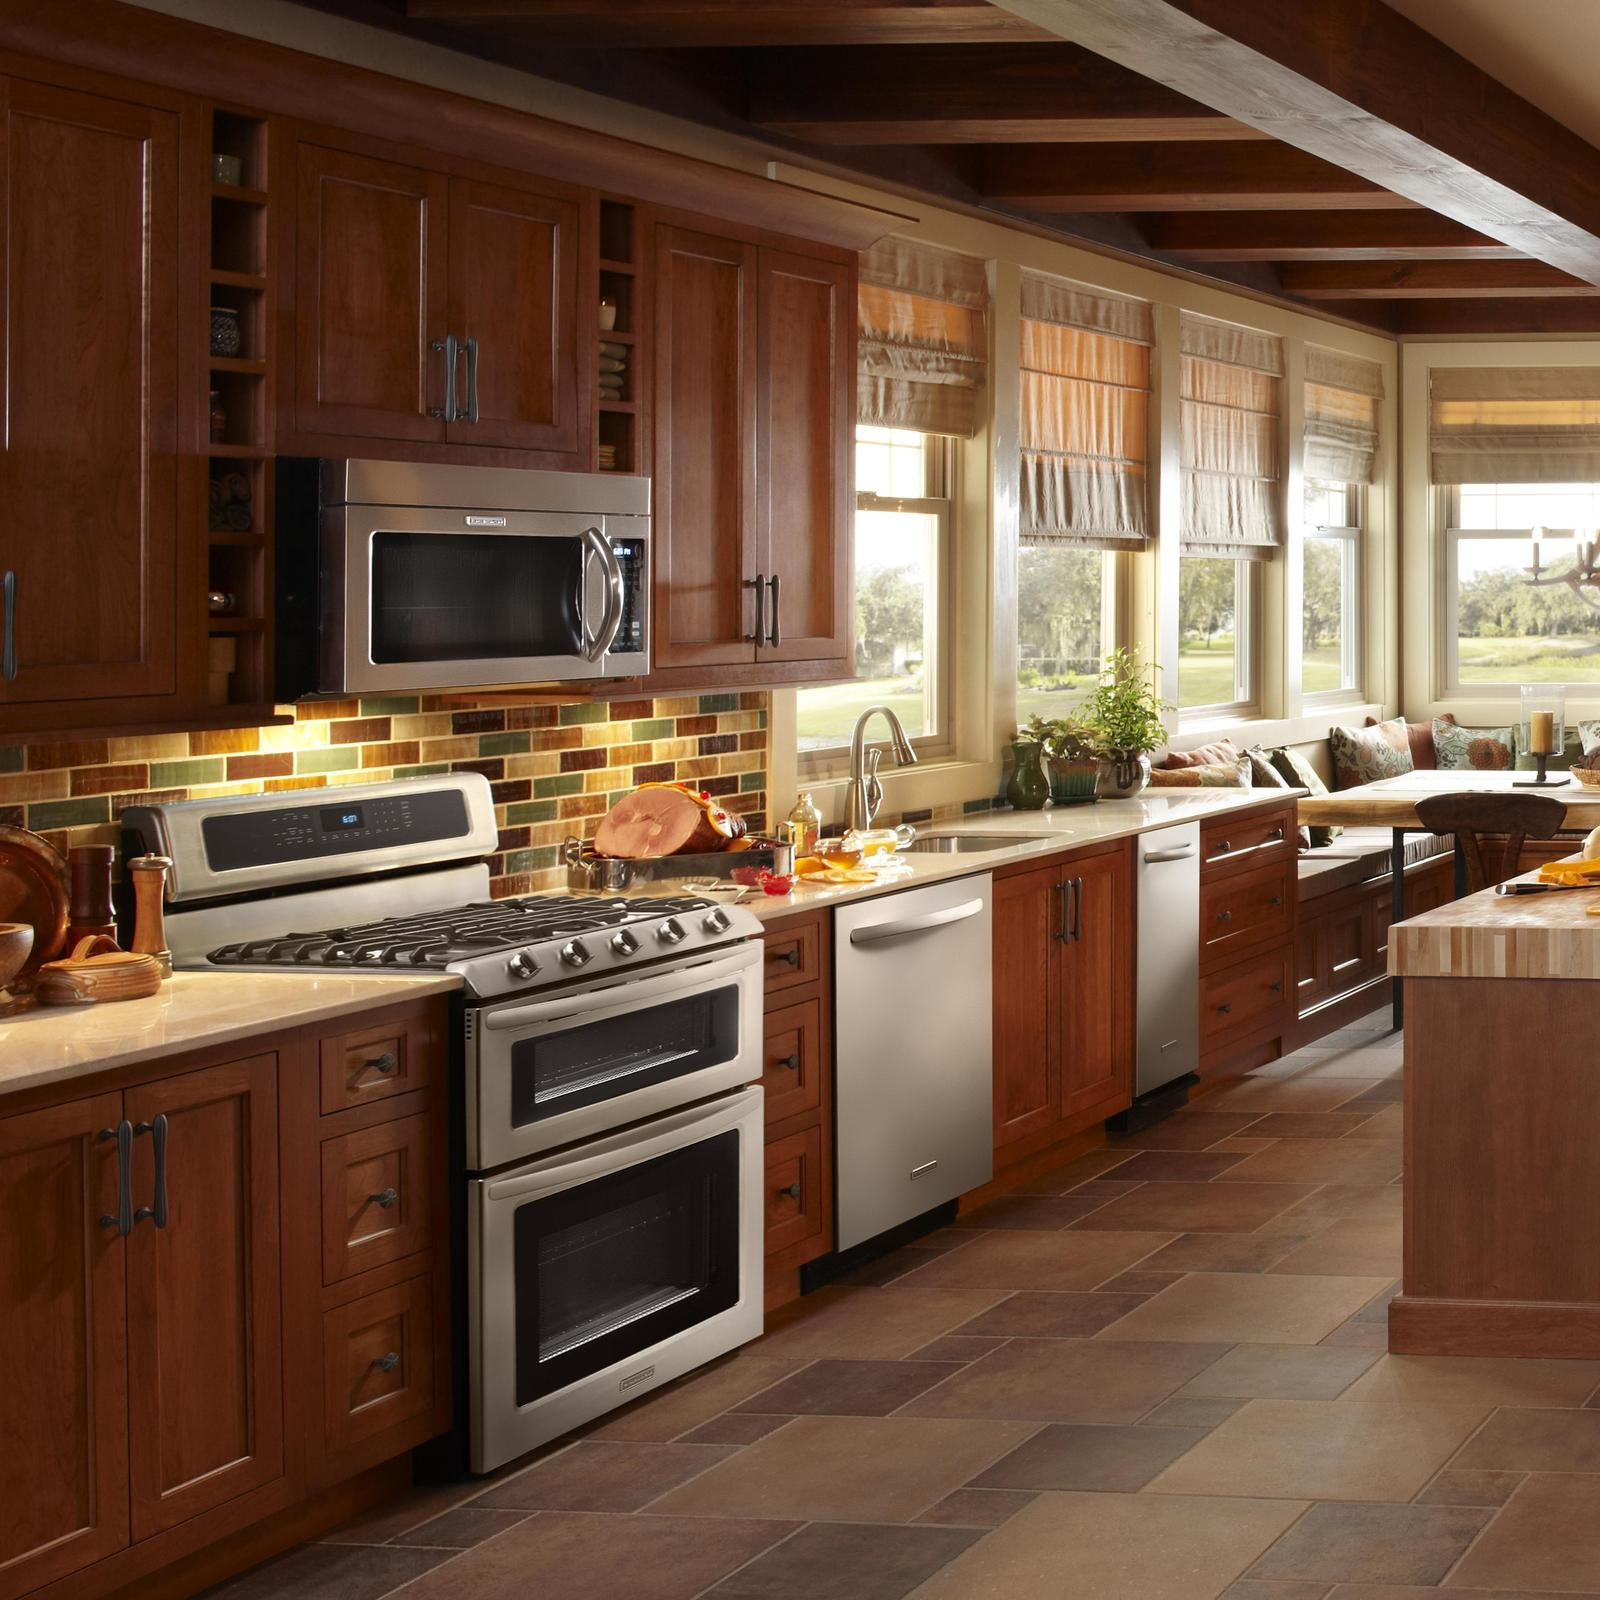 Best Small Kitchen Layout Kitchen Design Ideas For Small Kitchens November 2012